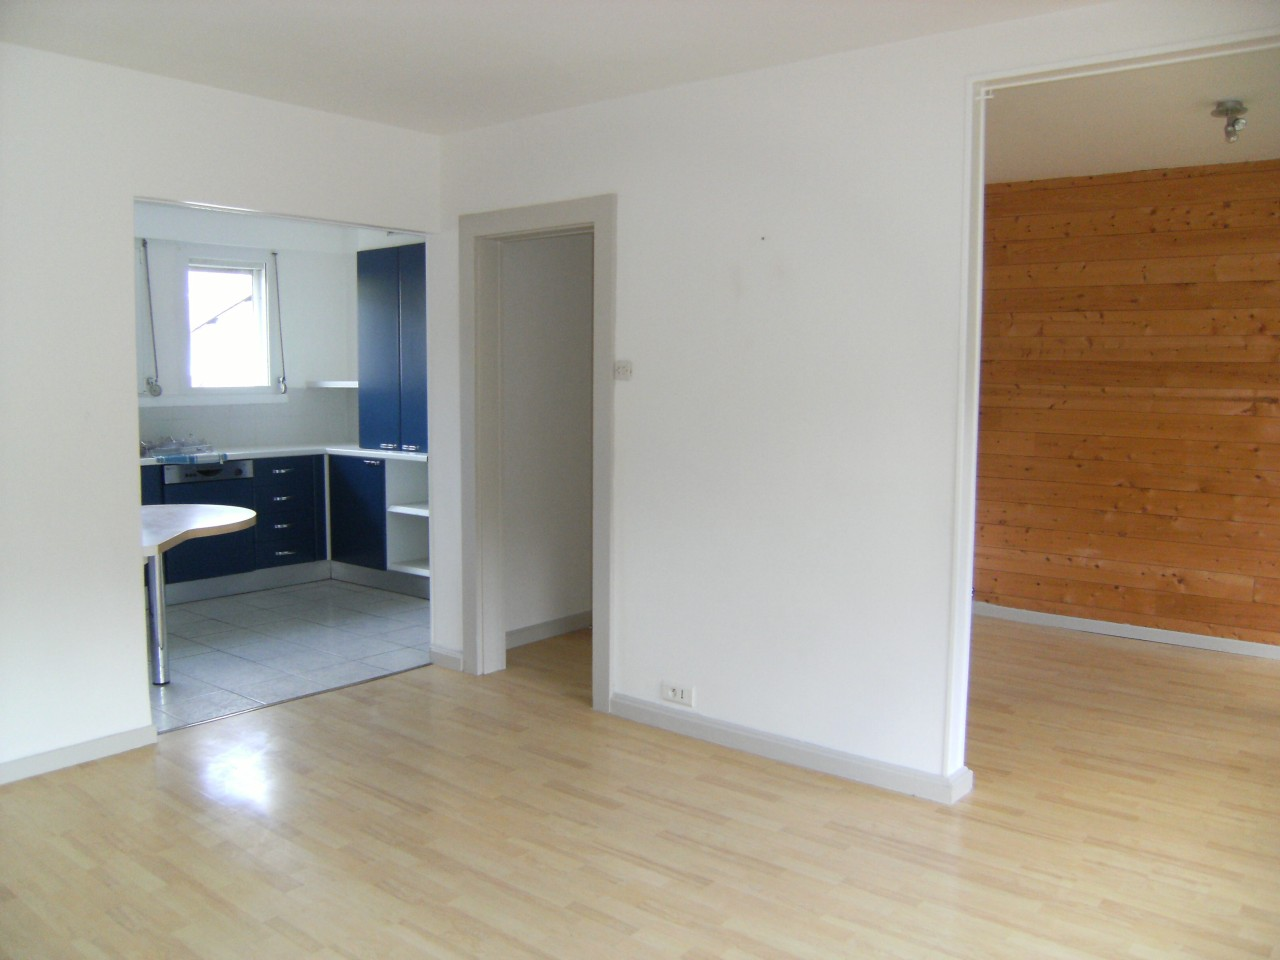 Agence immobili re g rardmer annonce appartements n 2283 for Agence immobiliere gerardmer